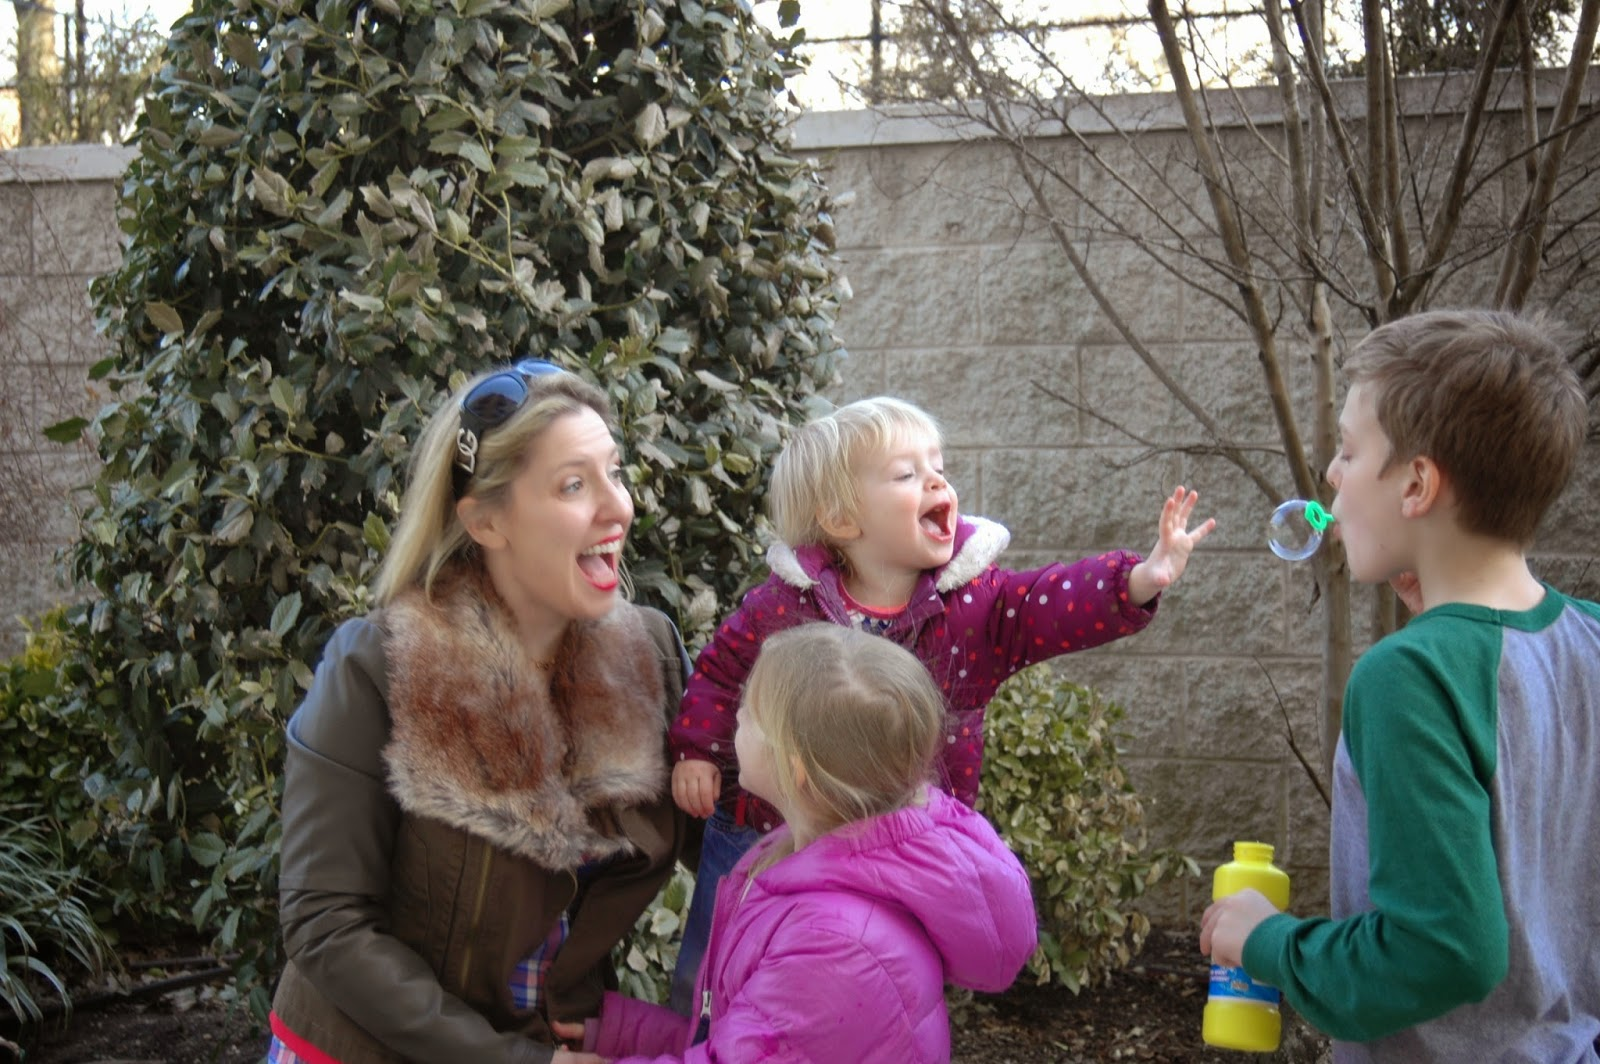 Nicole Kear and her children blowing bubbles